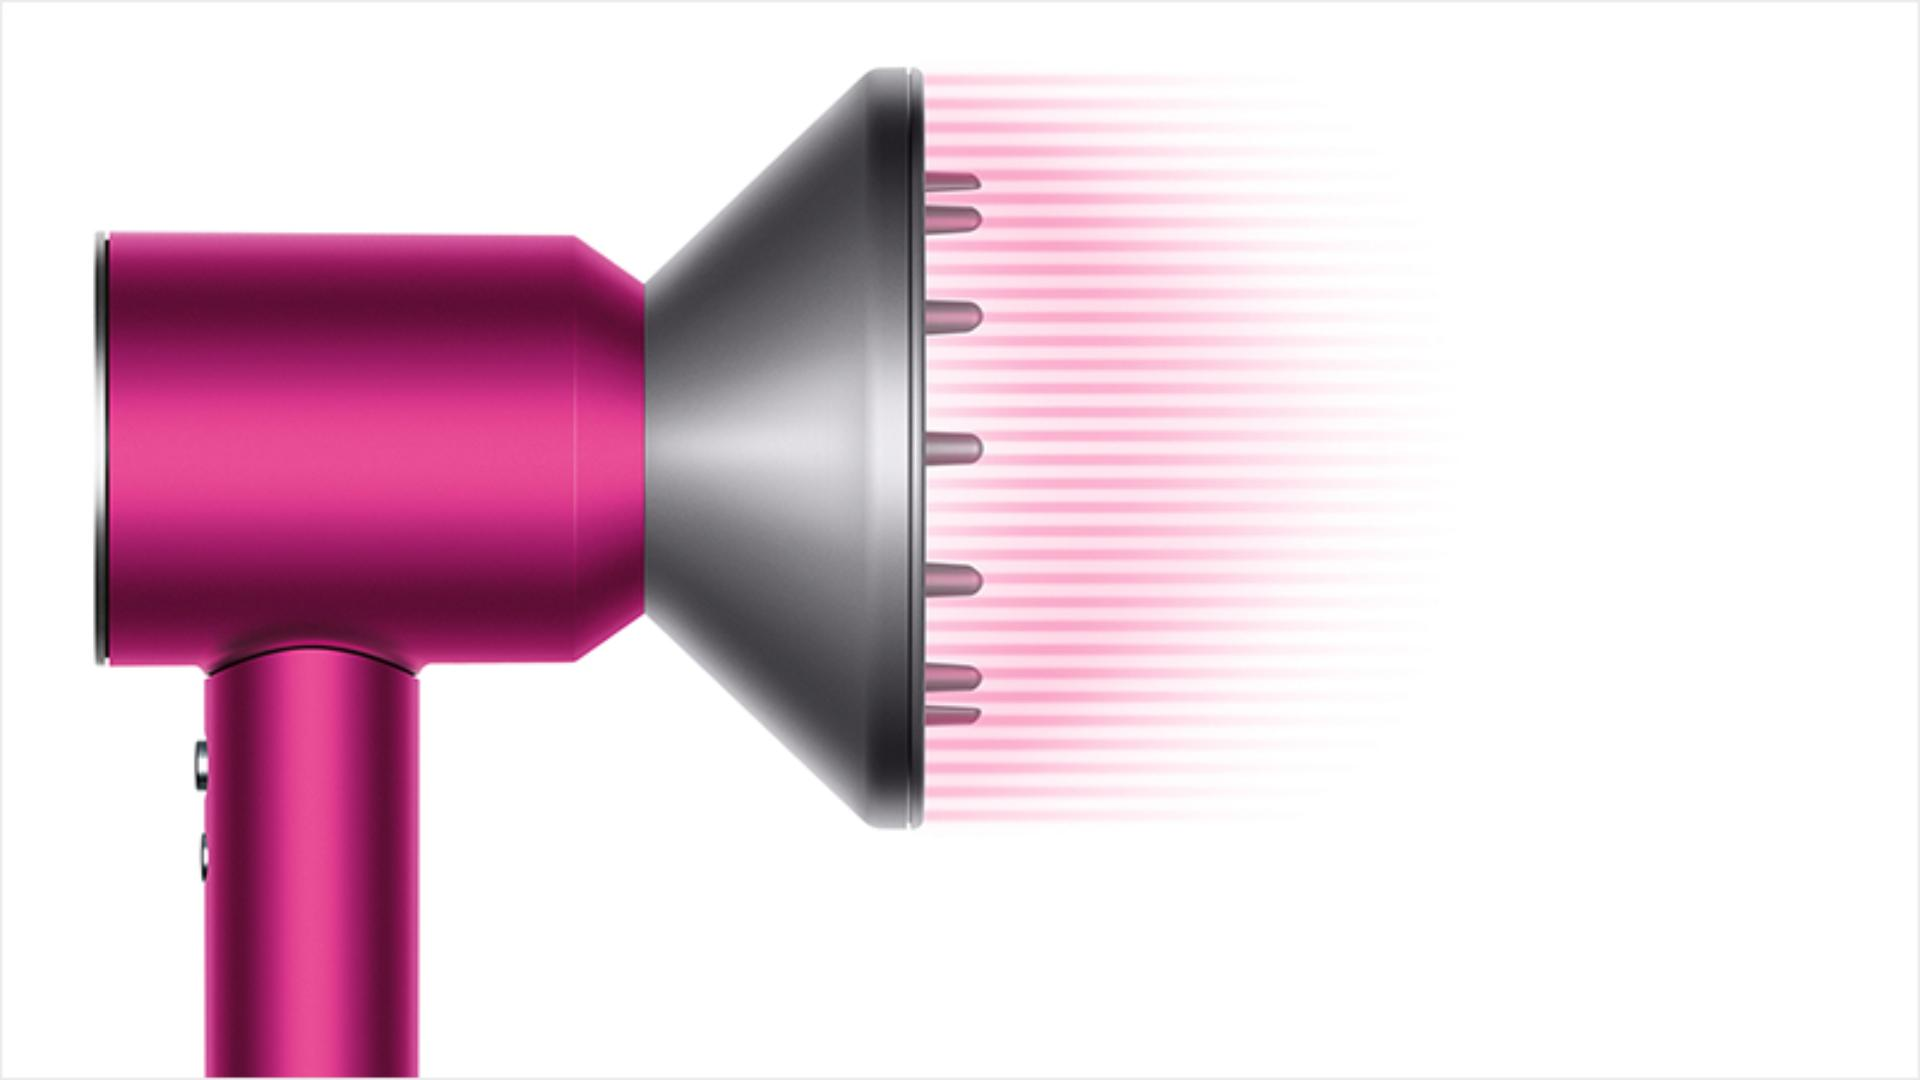 Dyson Supersonic™ hair dryer Iron/Fuchsia with re-engineered Diffuser attached